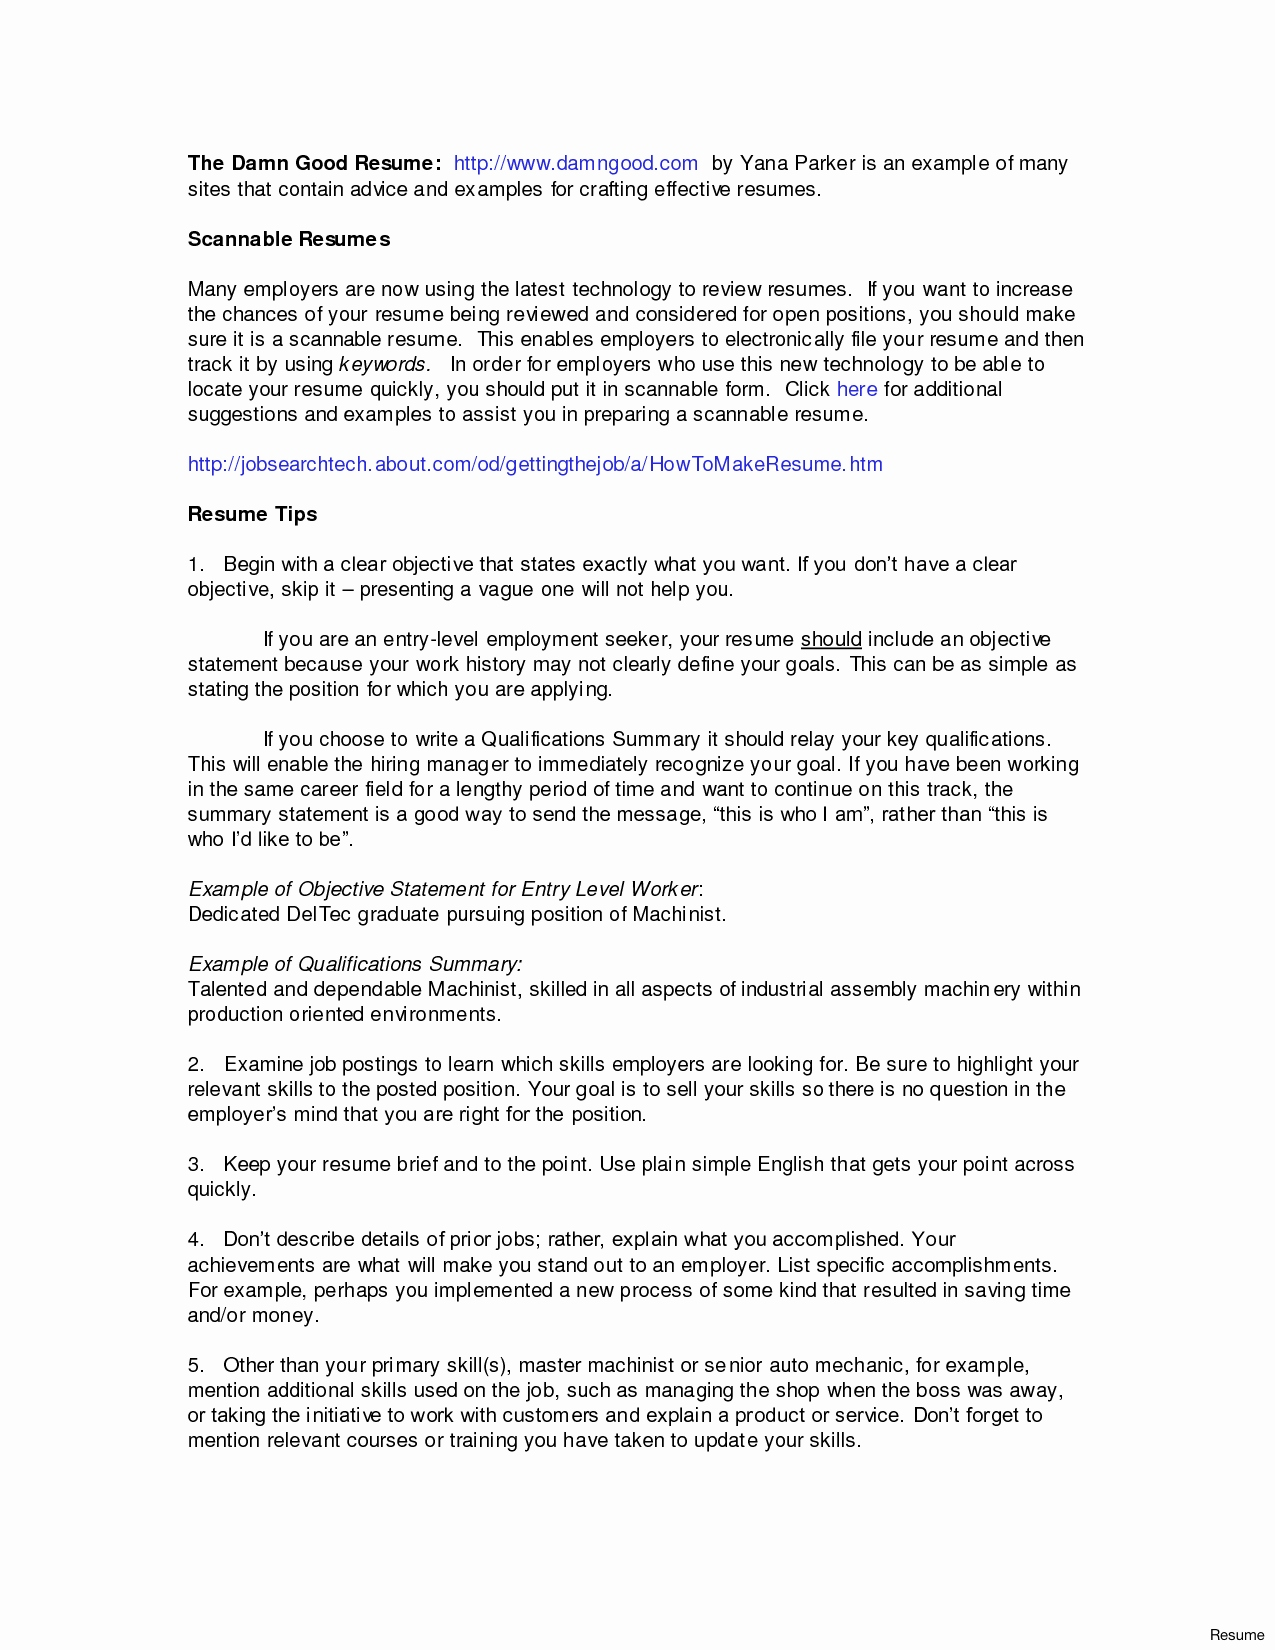 sears master protection agreement complai | worddocx